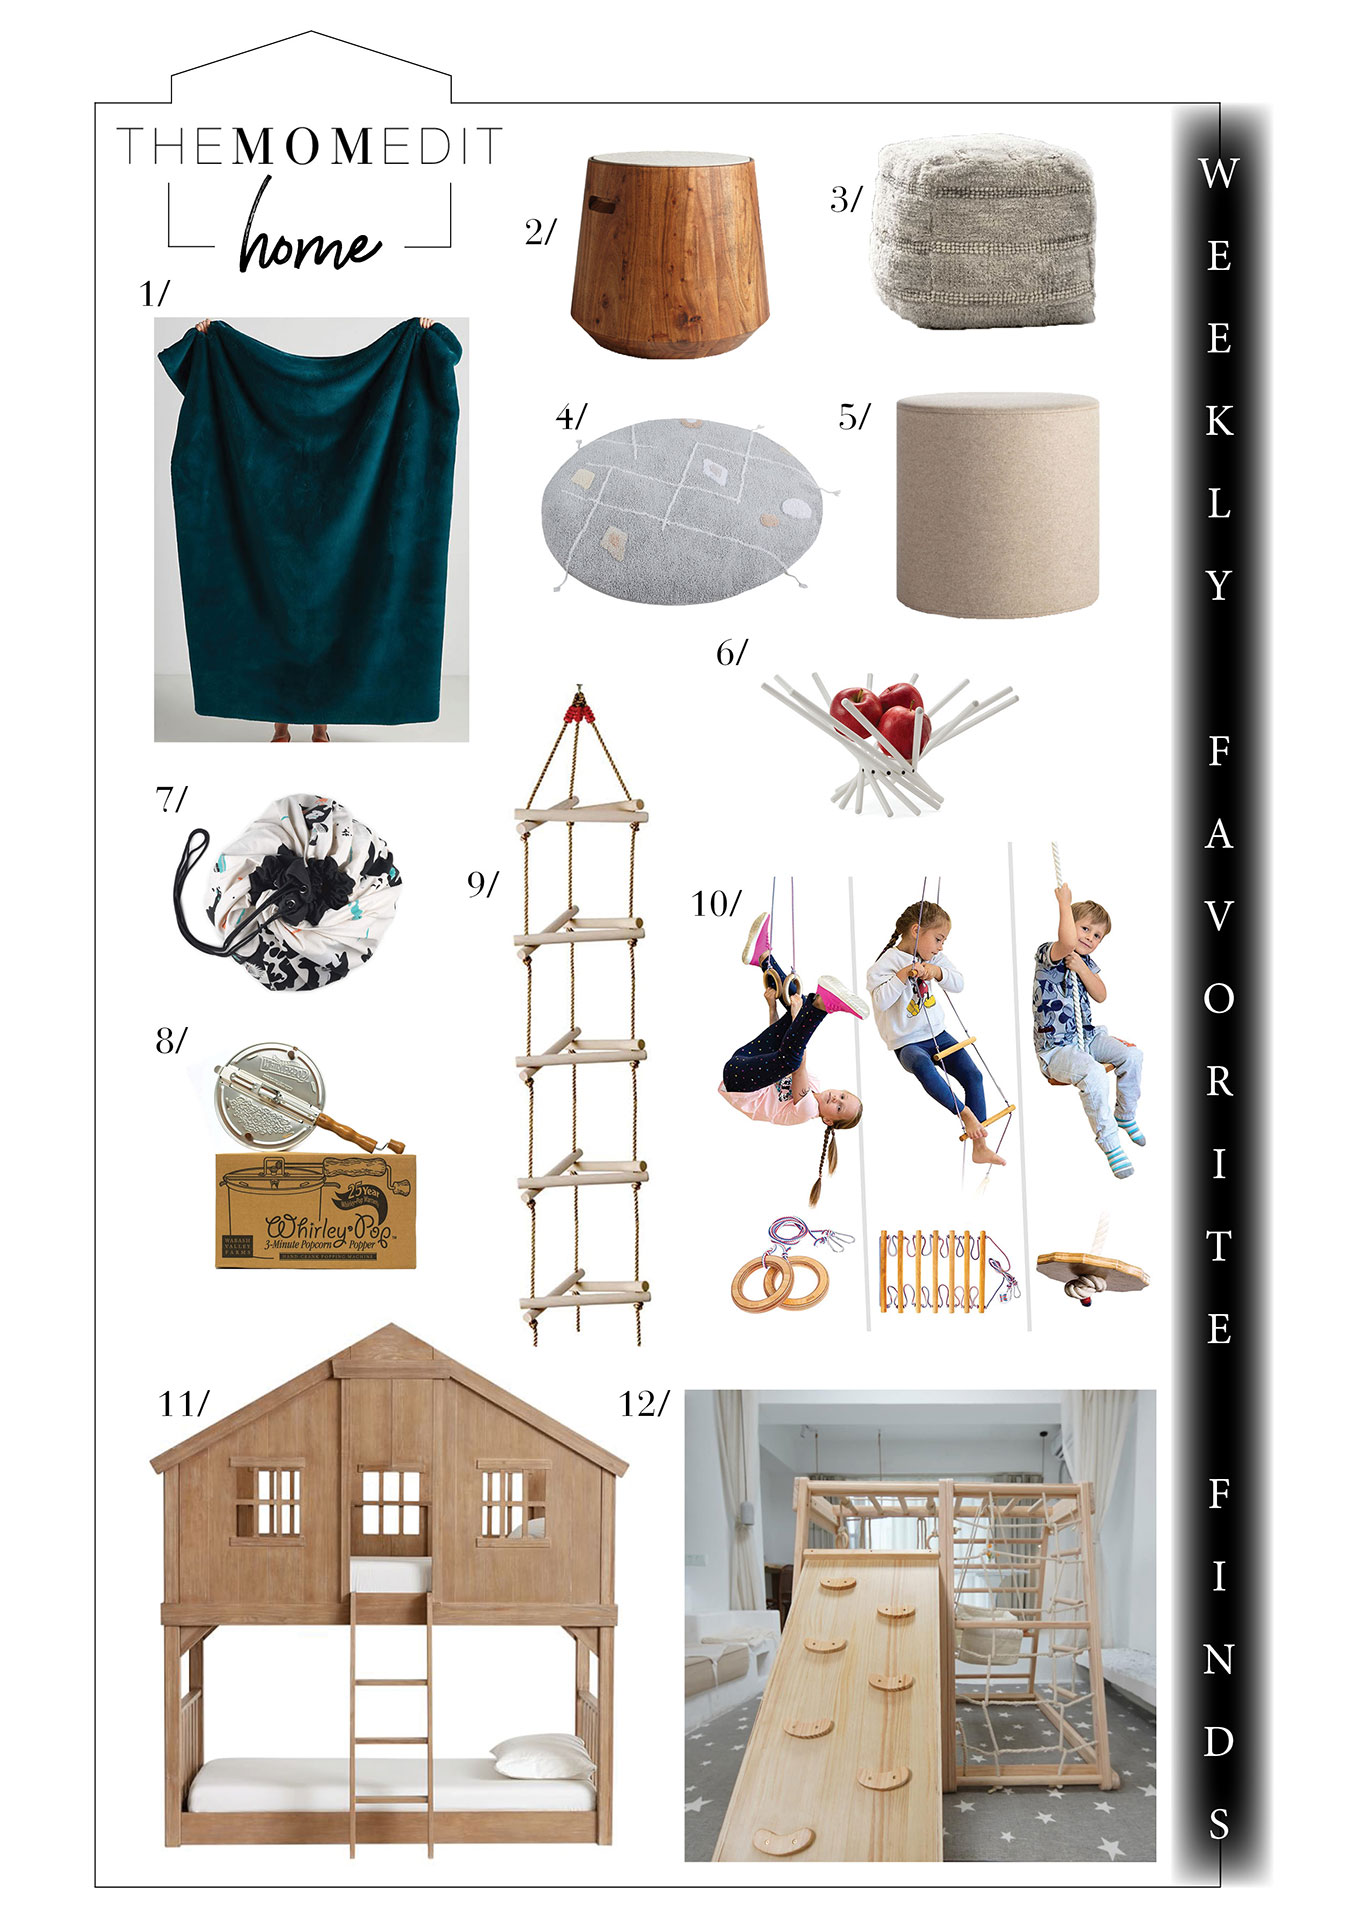 We have fun in the form of poufs & indoor gyms for the kids + other fun gifts for home. Check out Yowie, a Black-owned business, plus CB2 & Macy's.